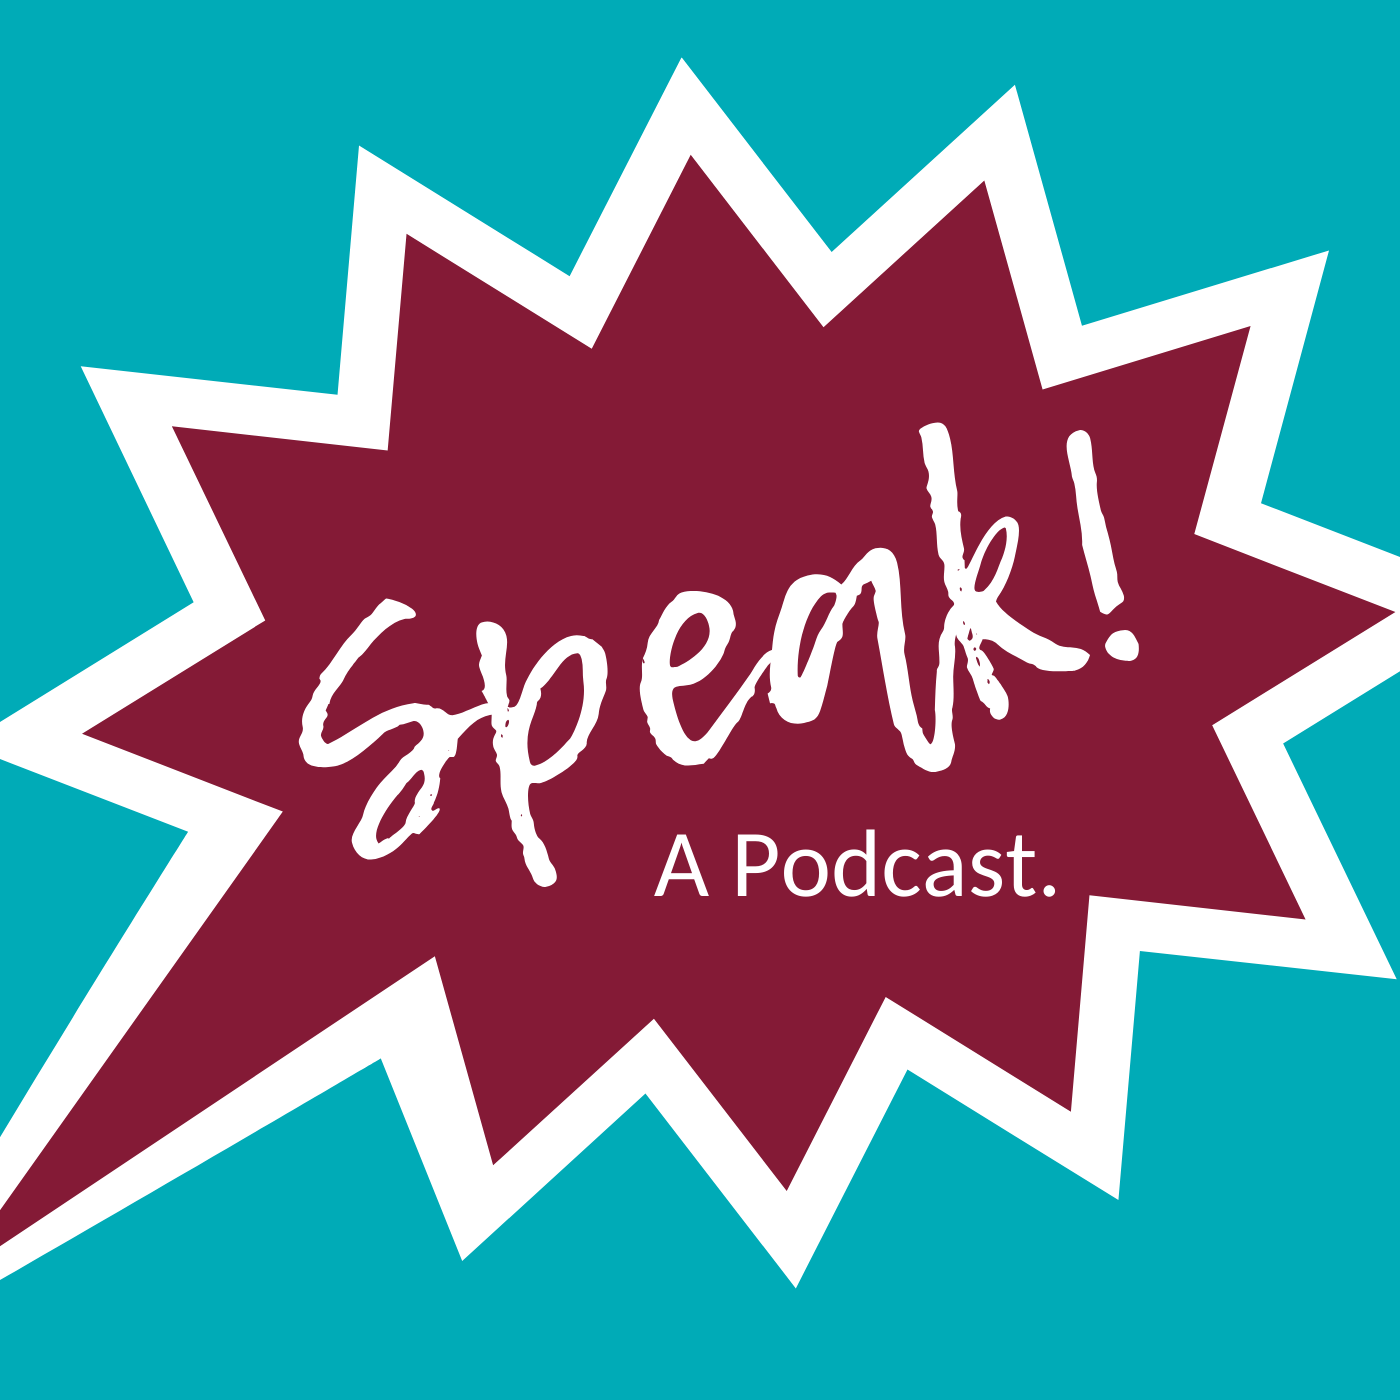 Speak! A Podcast About the Podcasting & Voiceover Industries